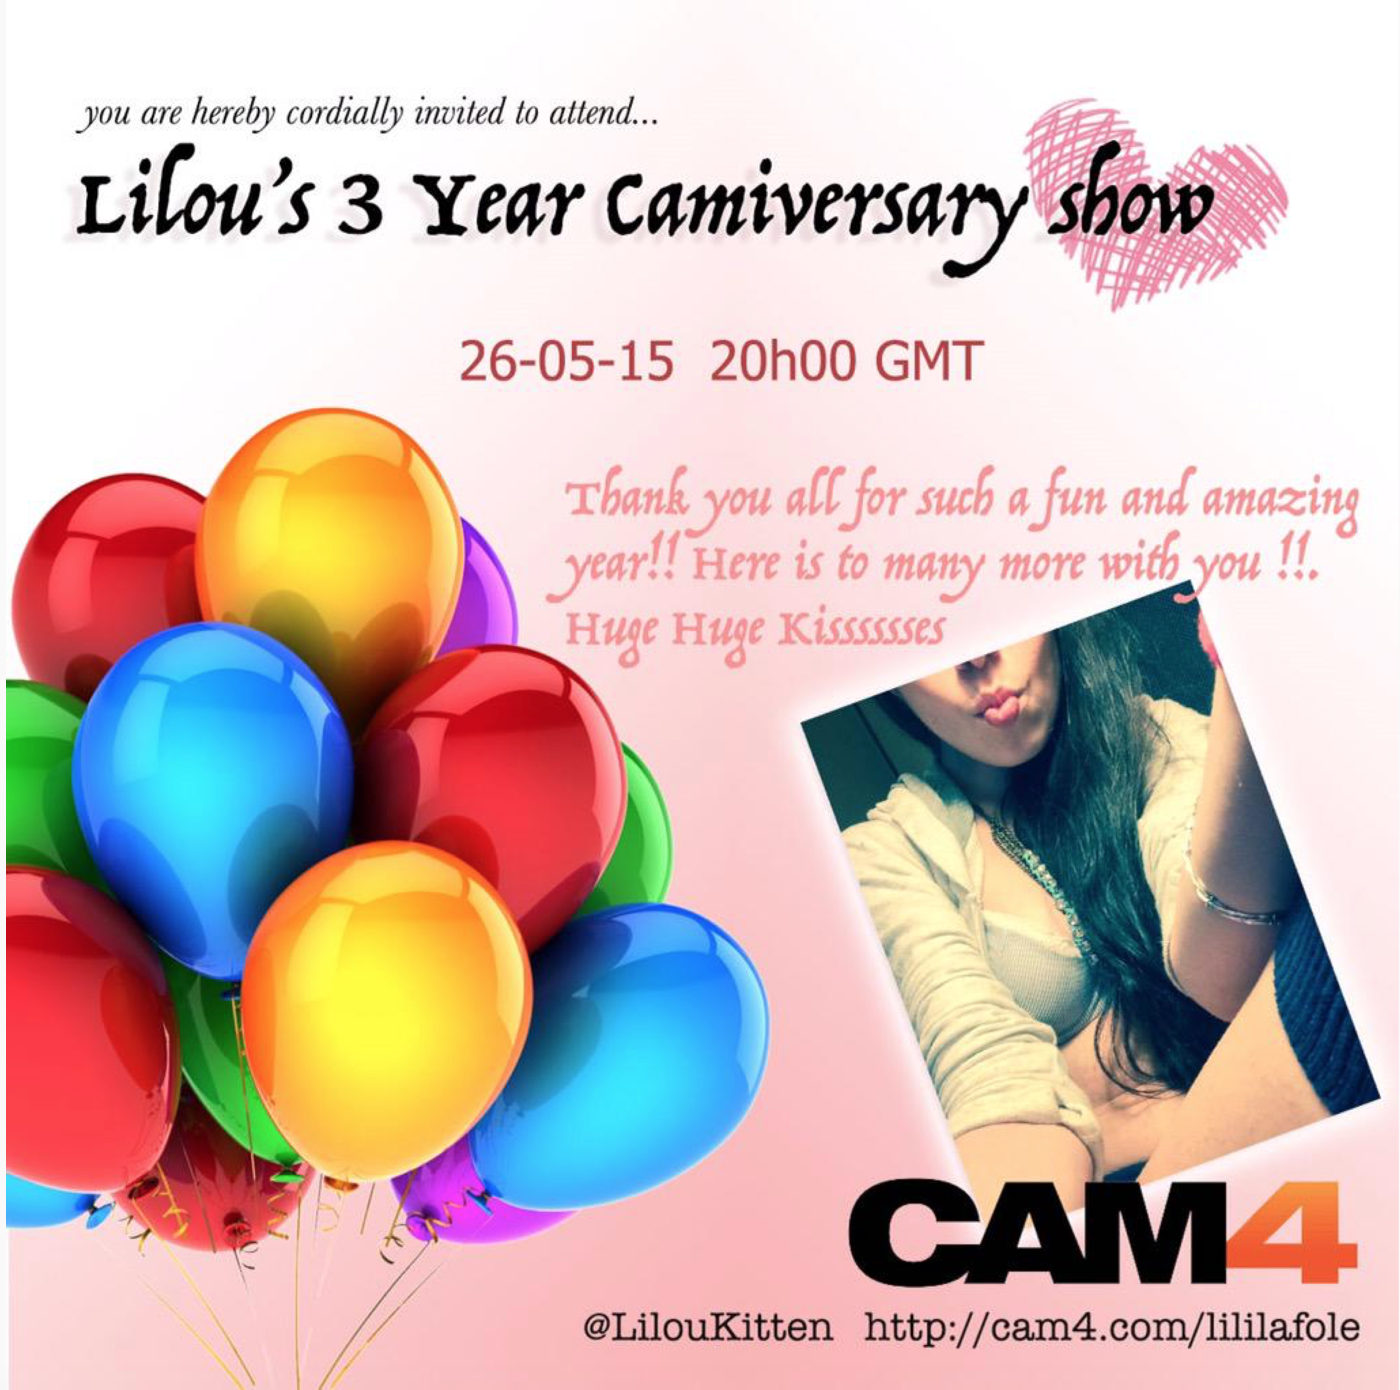 Lililafole: Three Sexy Years of Sexy Camshows on CAM4!